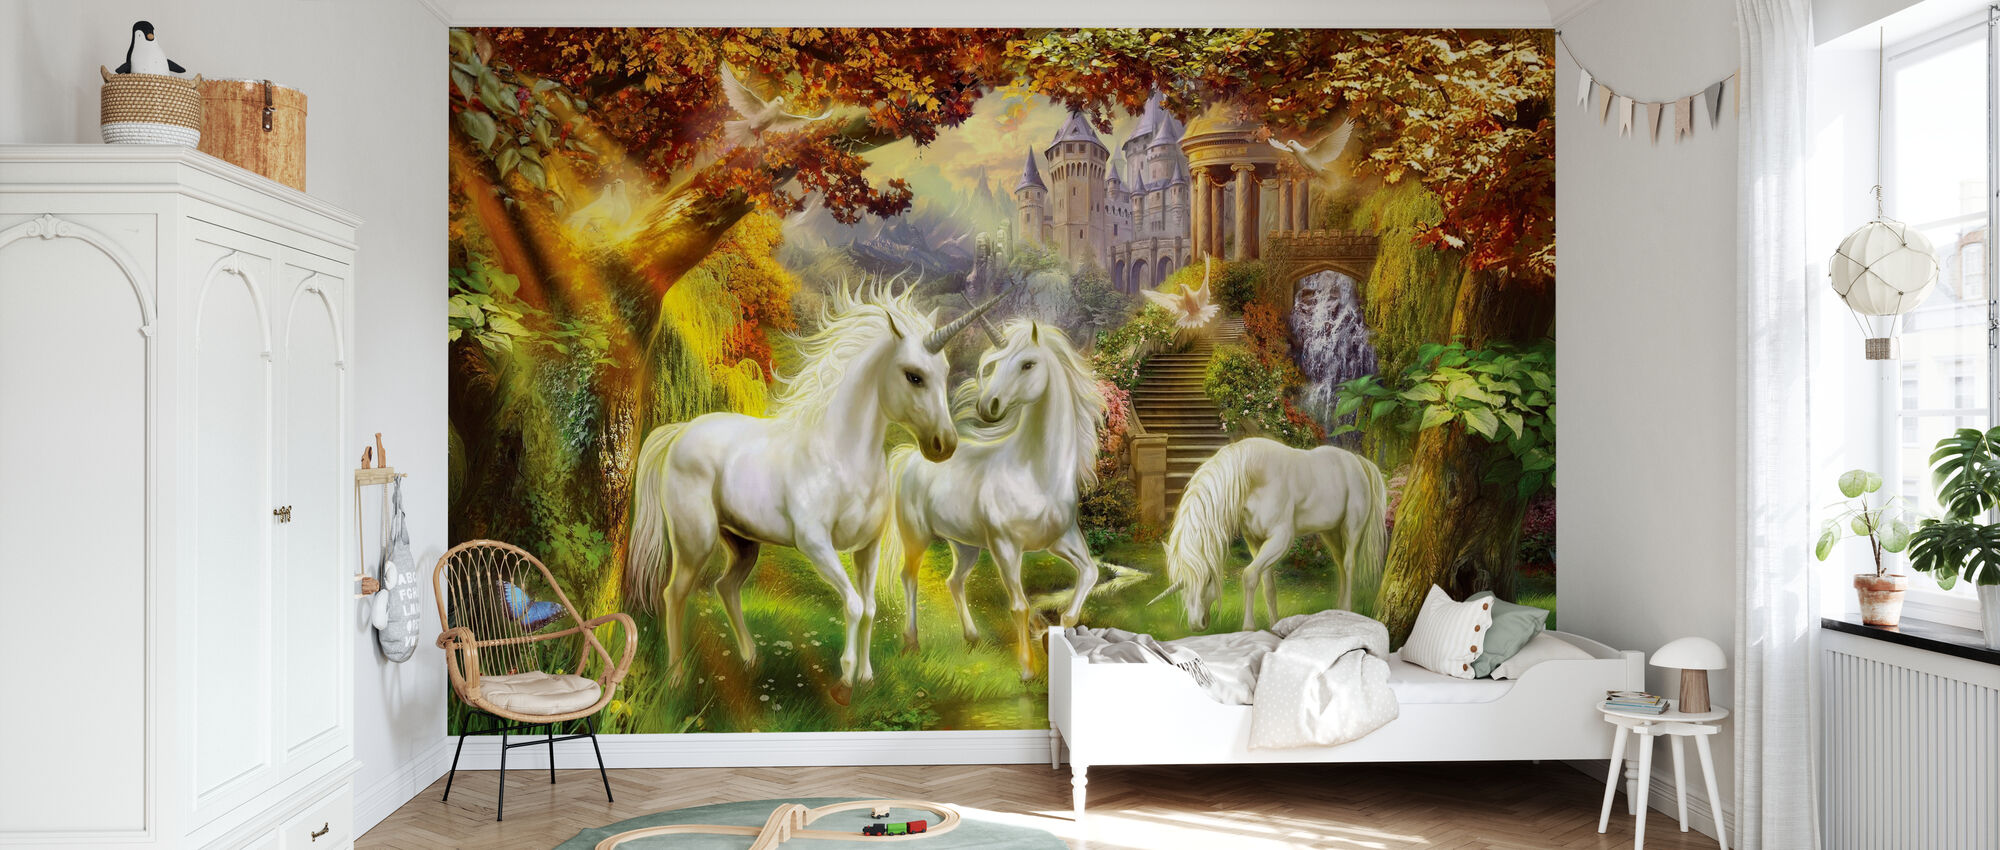 Magical Unicorn Forest Amended - Wallpaper - Kids Room